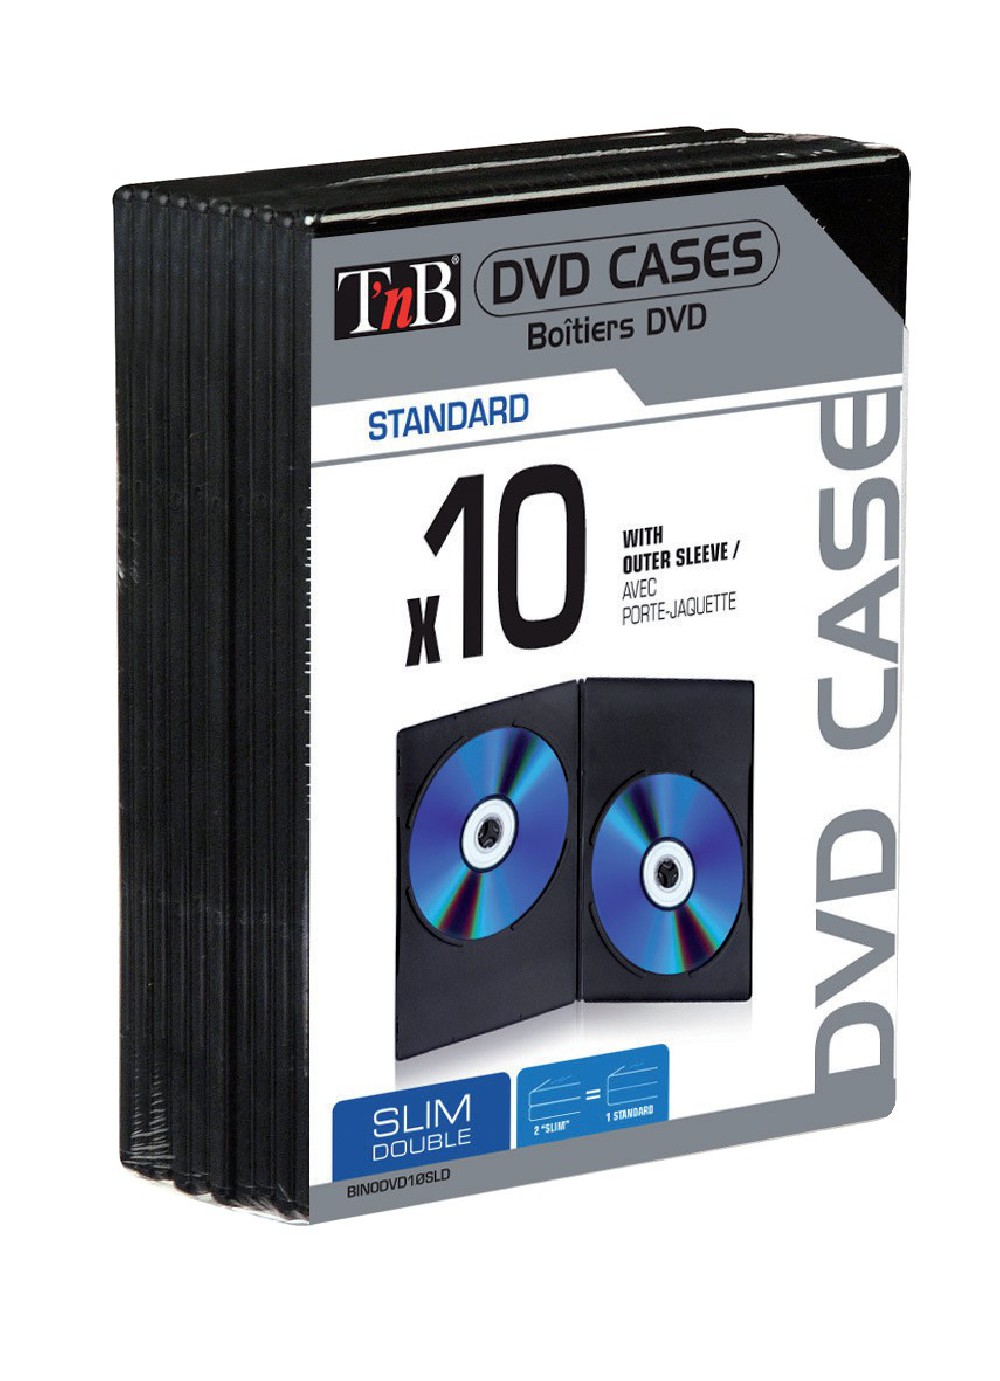 DOUBLE SLIM DVD CASES X10